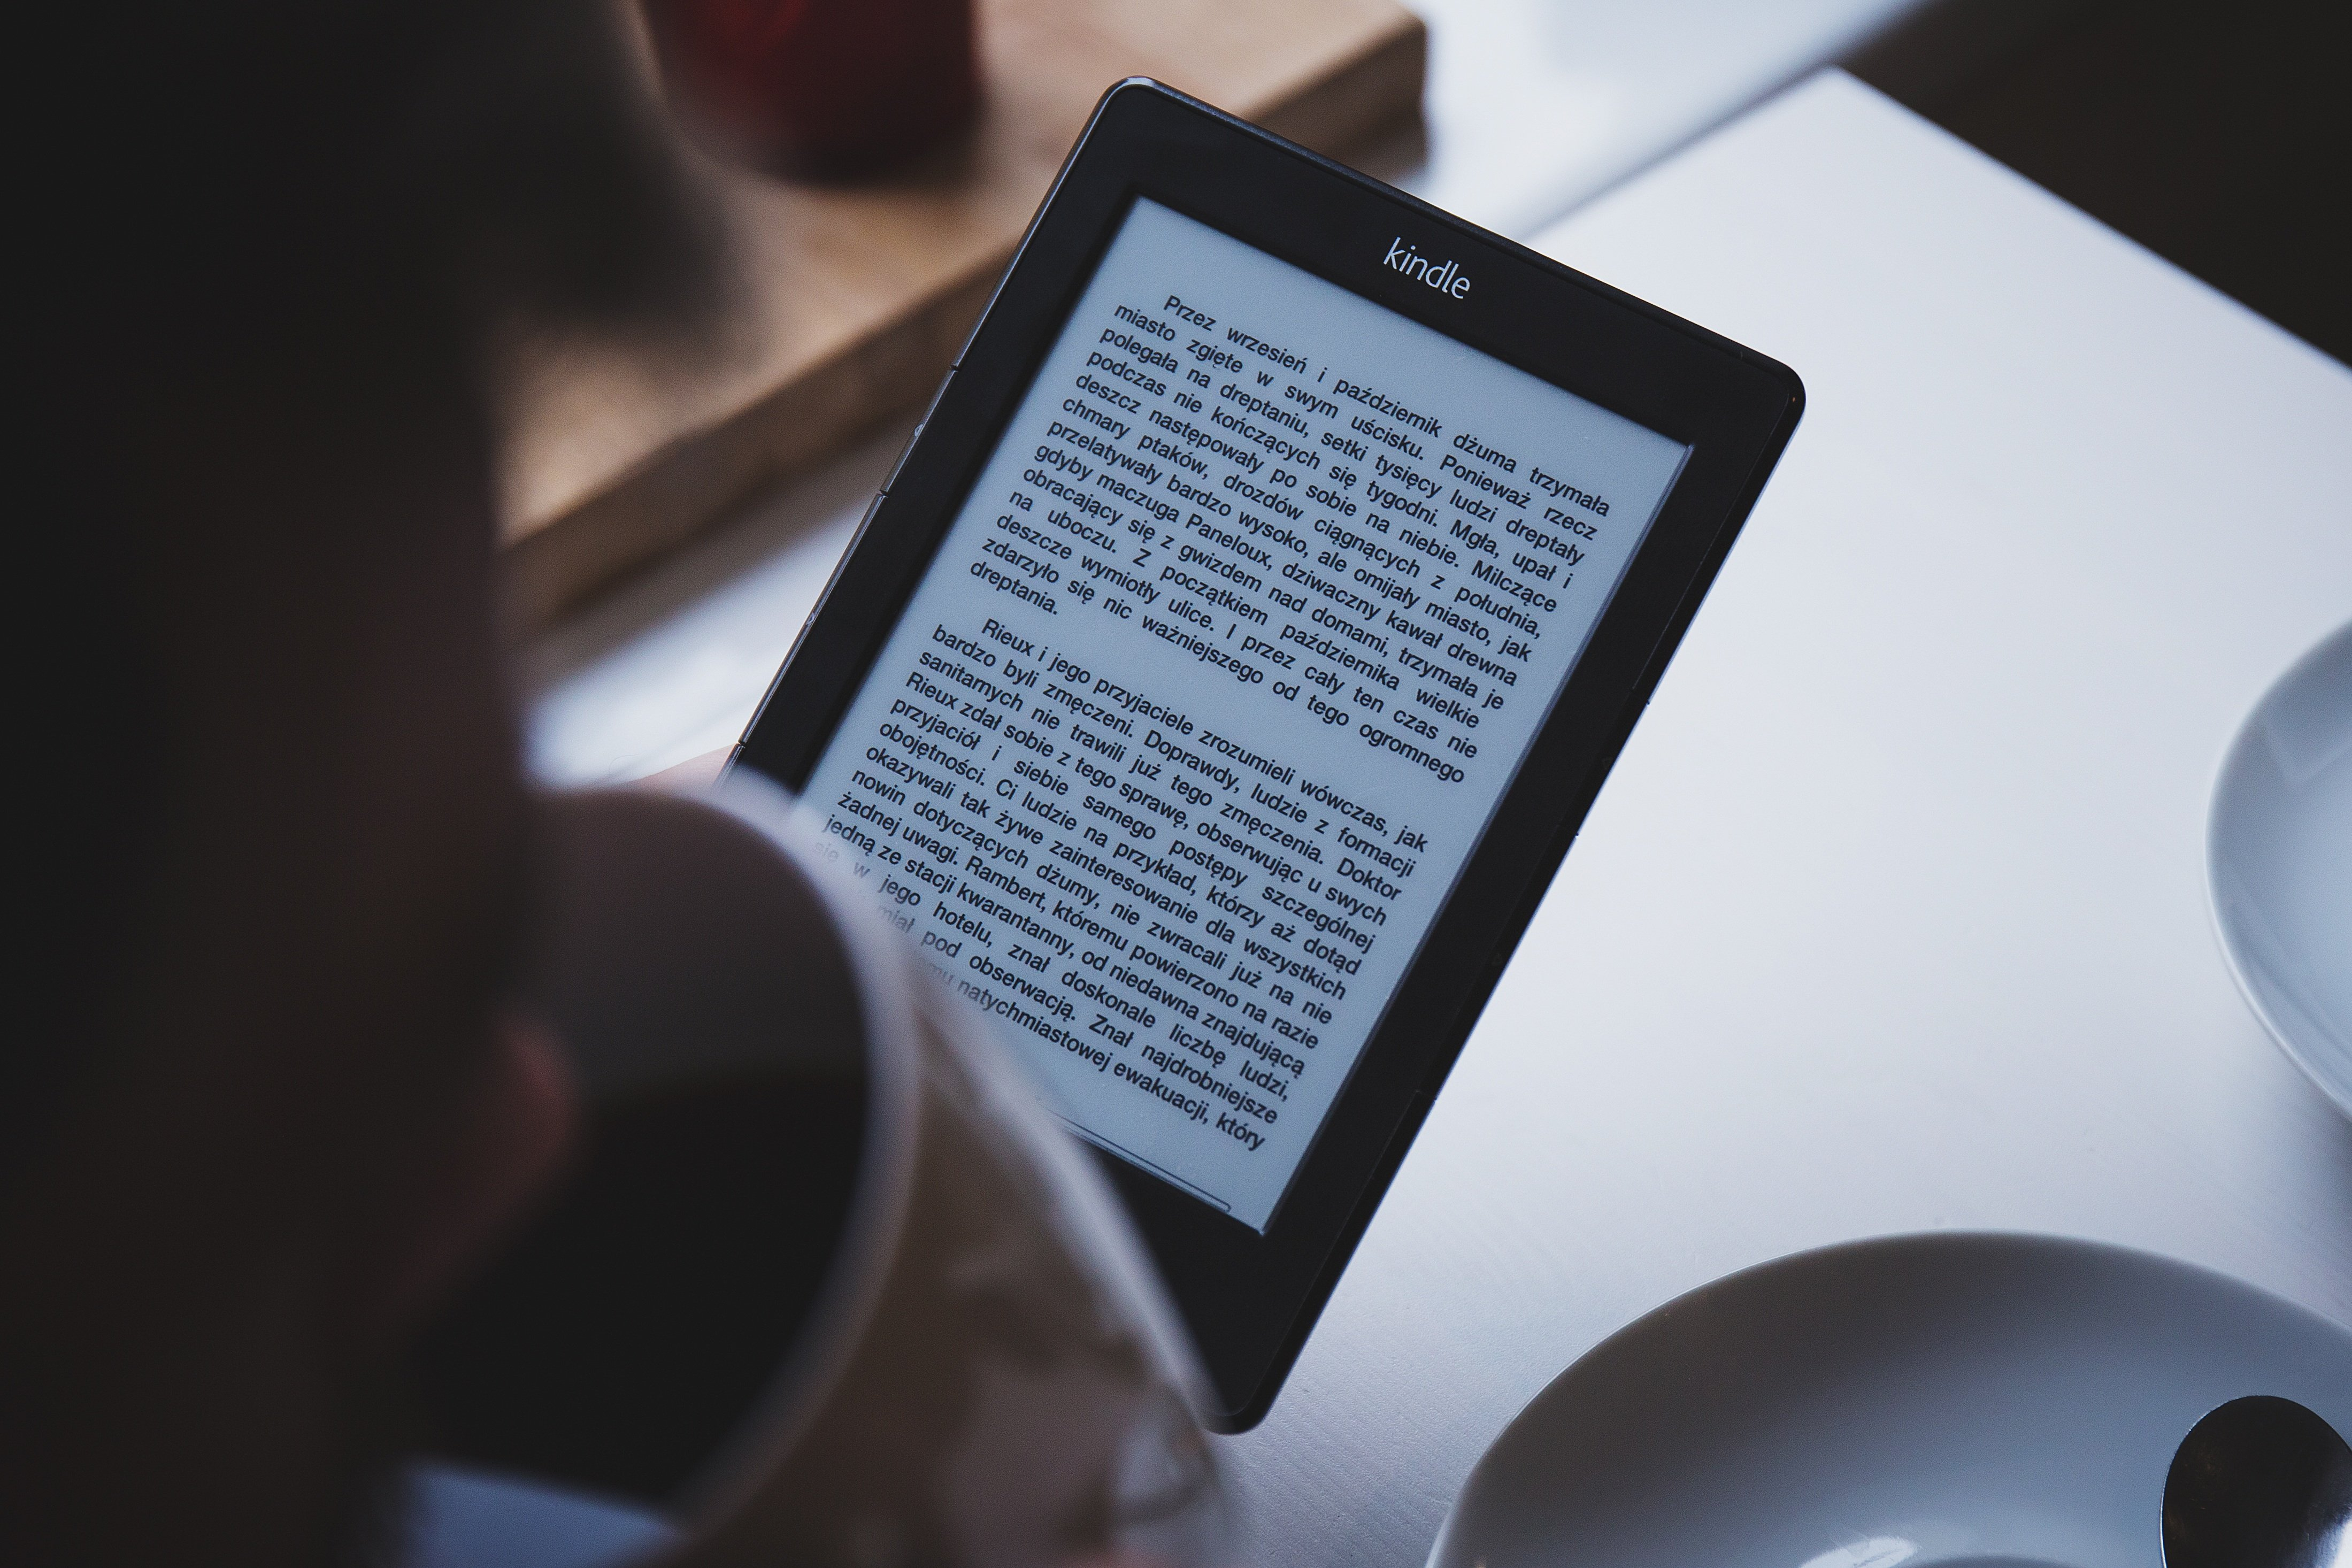 A Kindle displaying text in Polish.